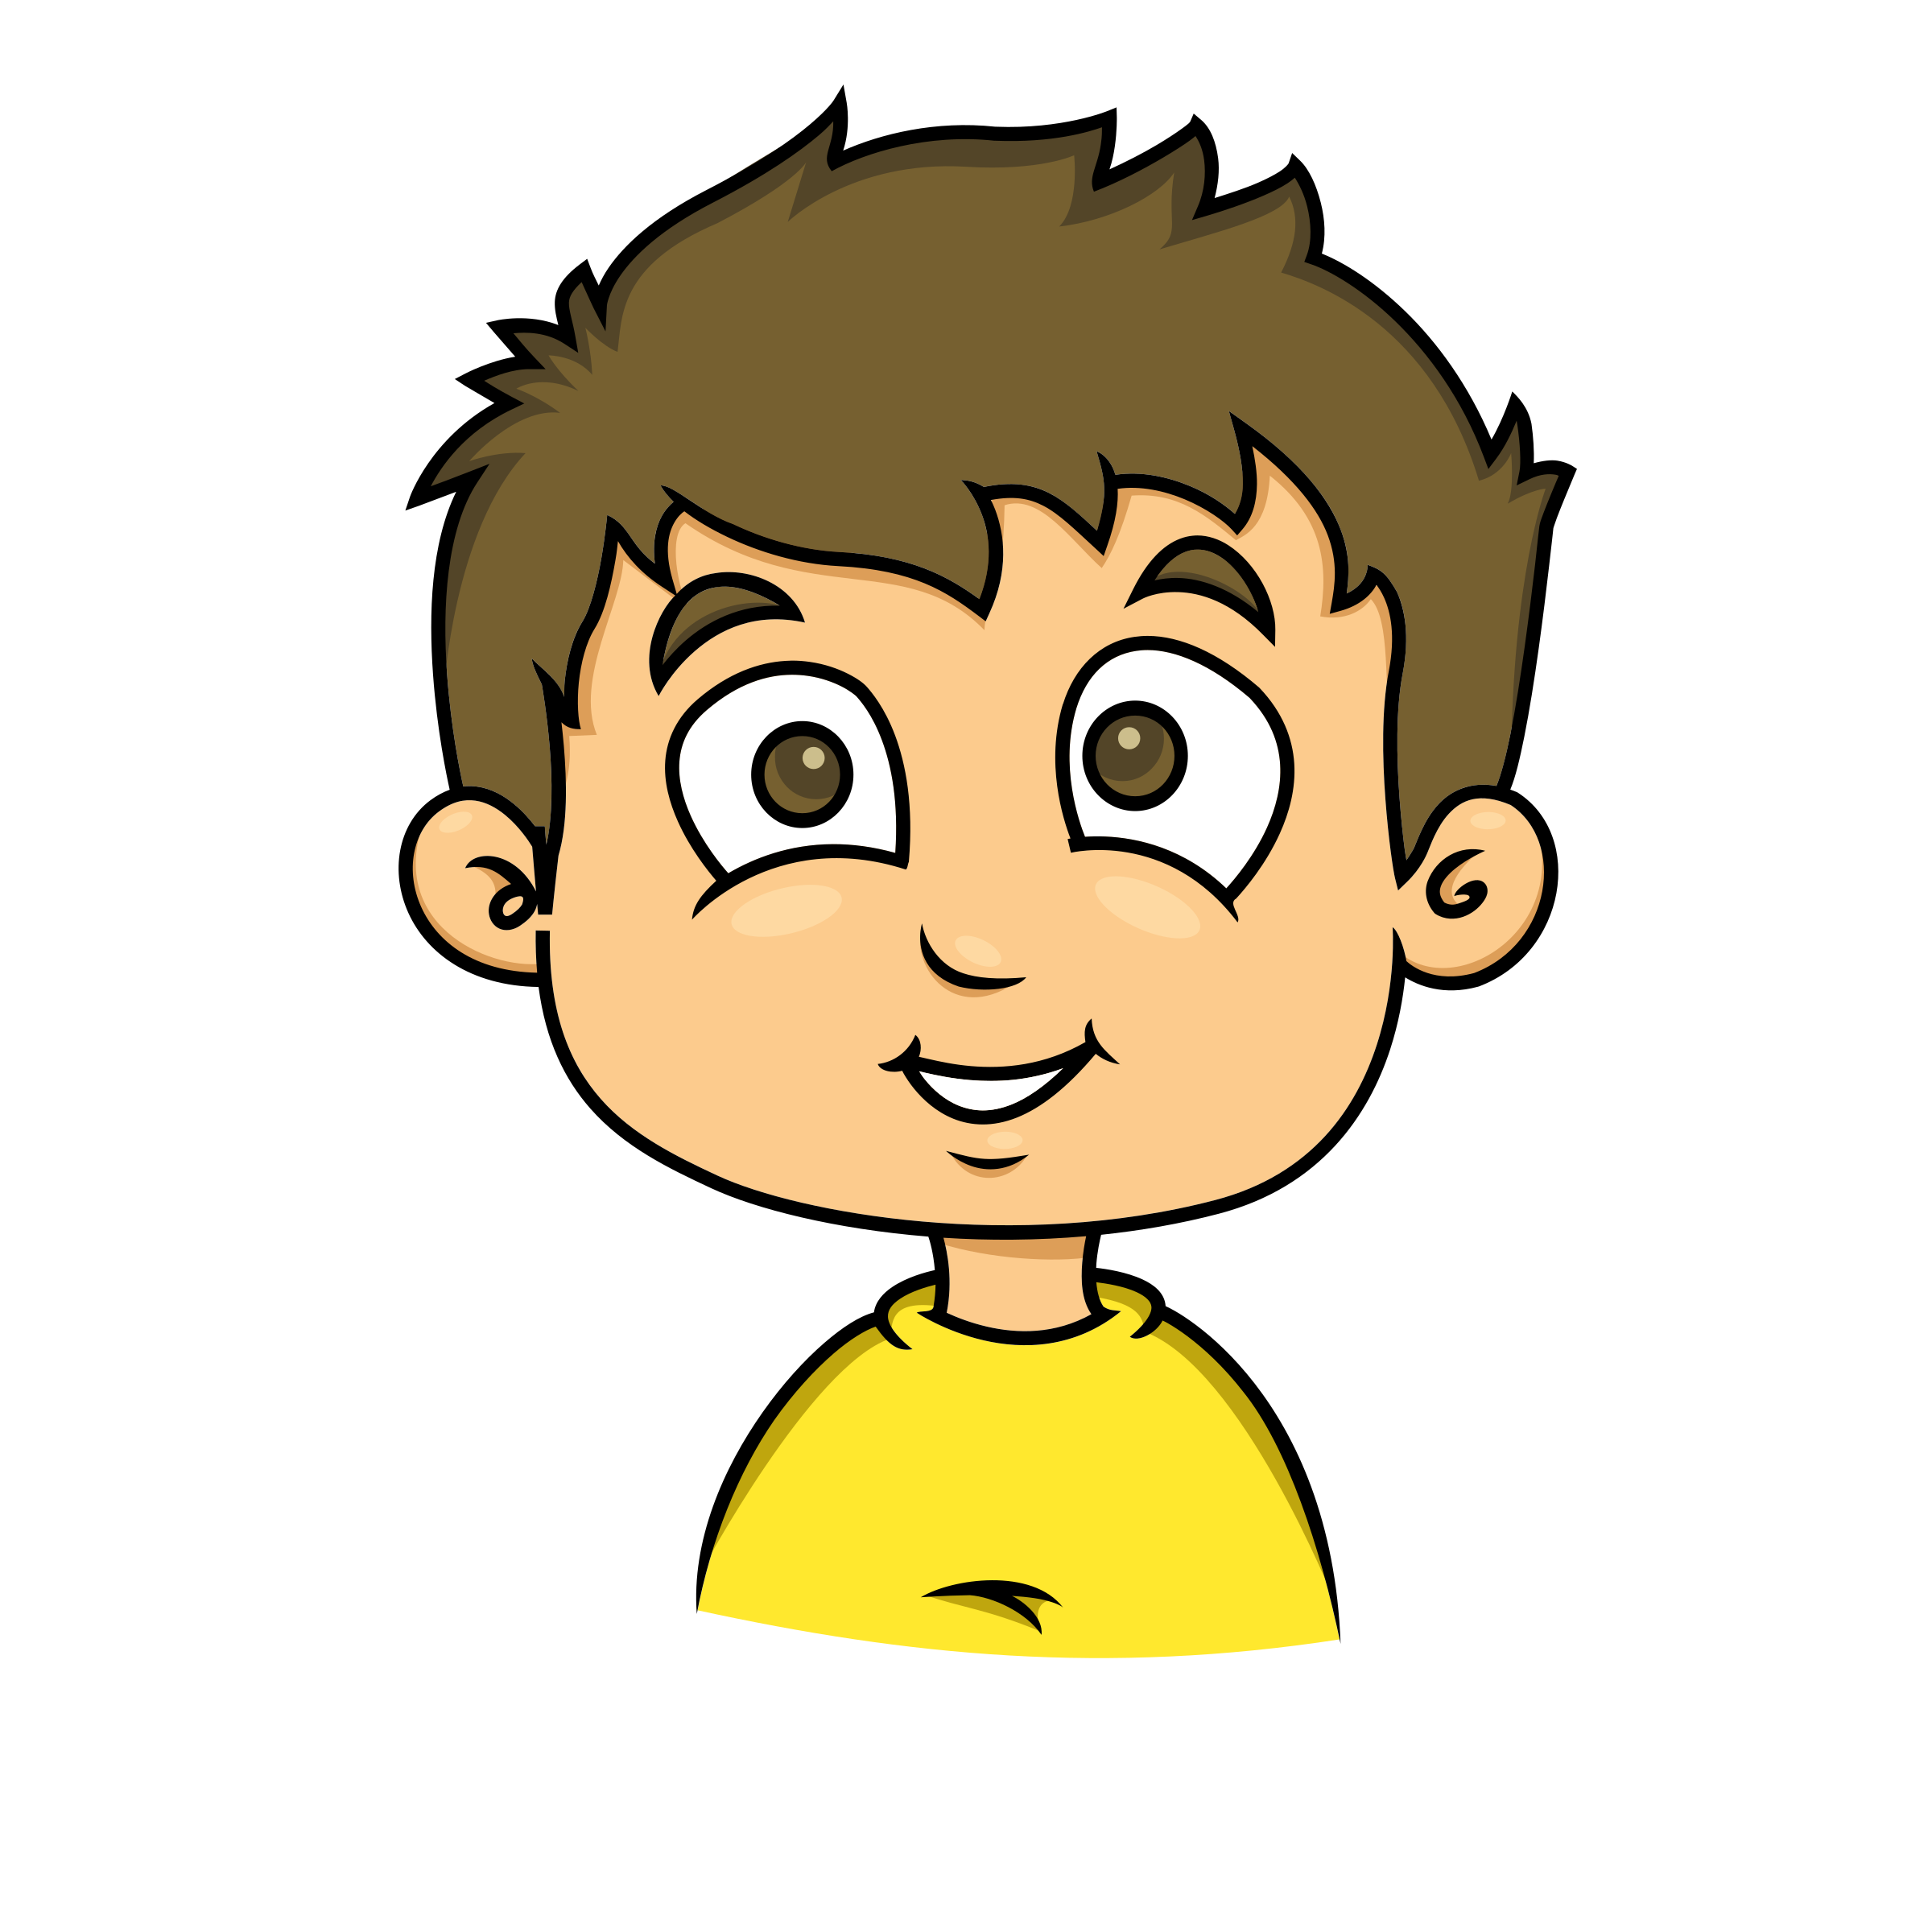 smiling face of a child 2